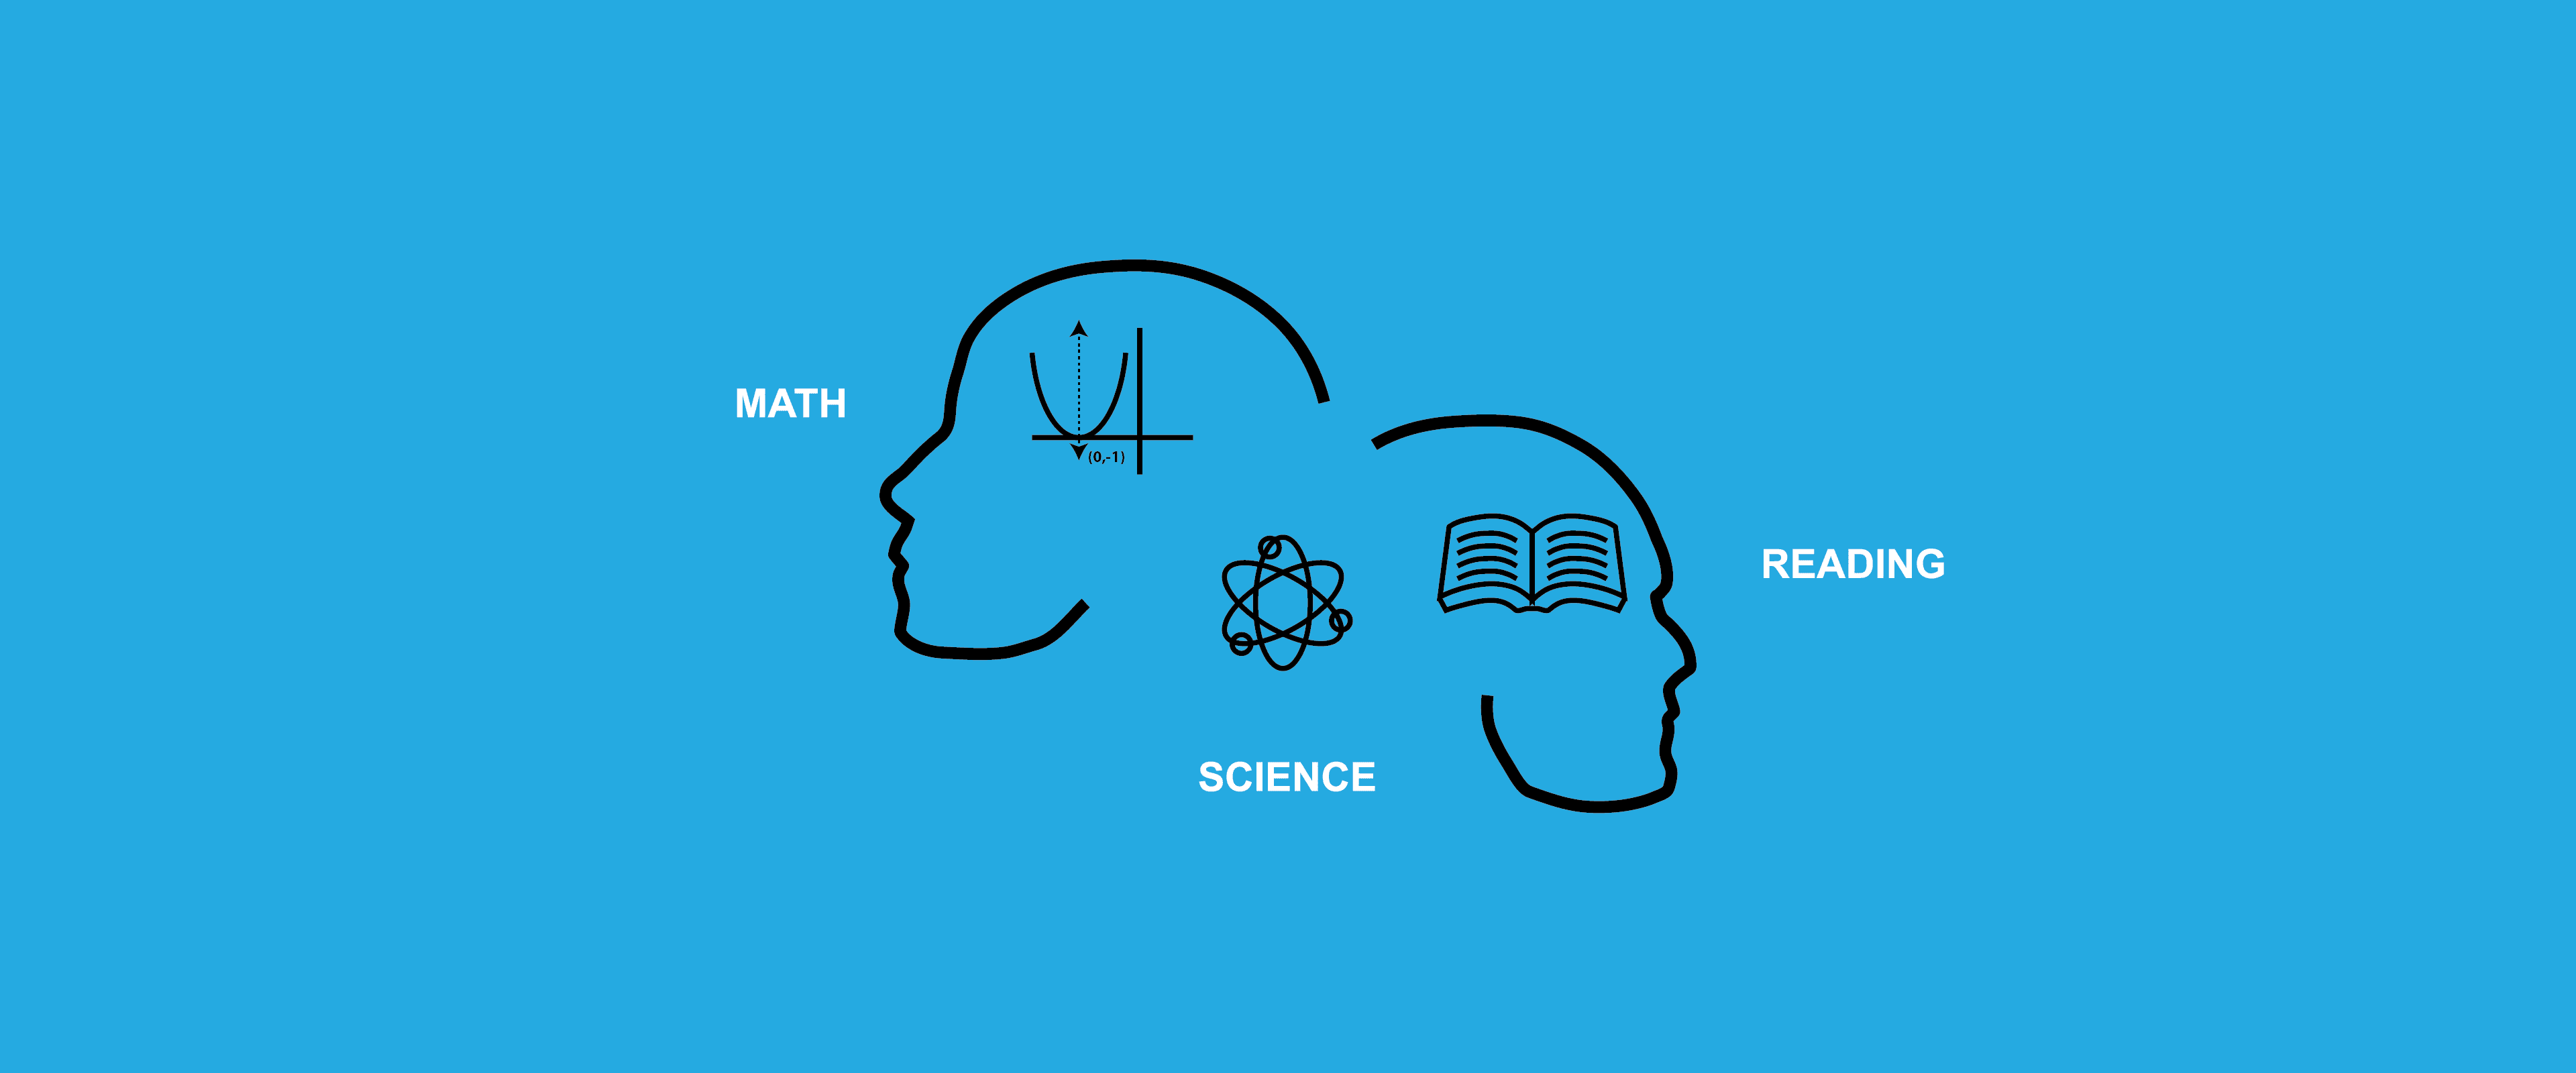 MASTERthese   Students for better math, science, and reading